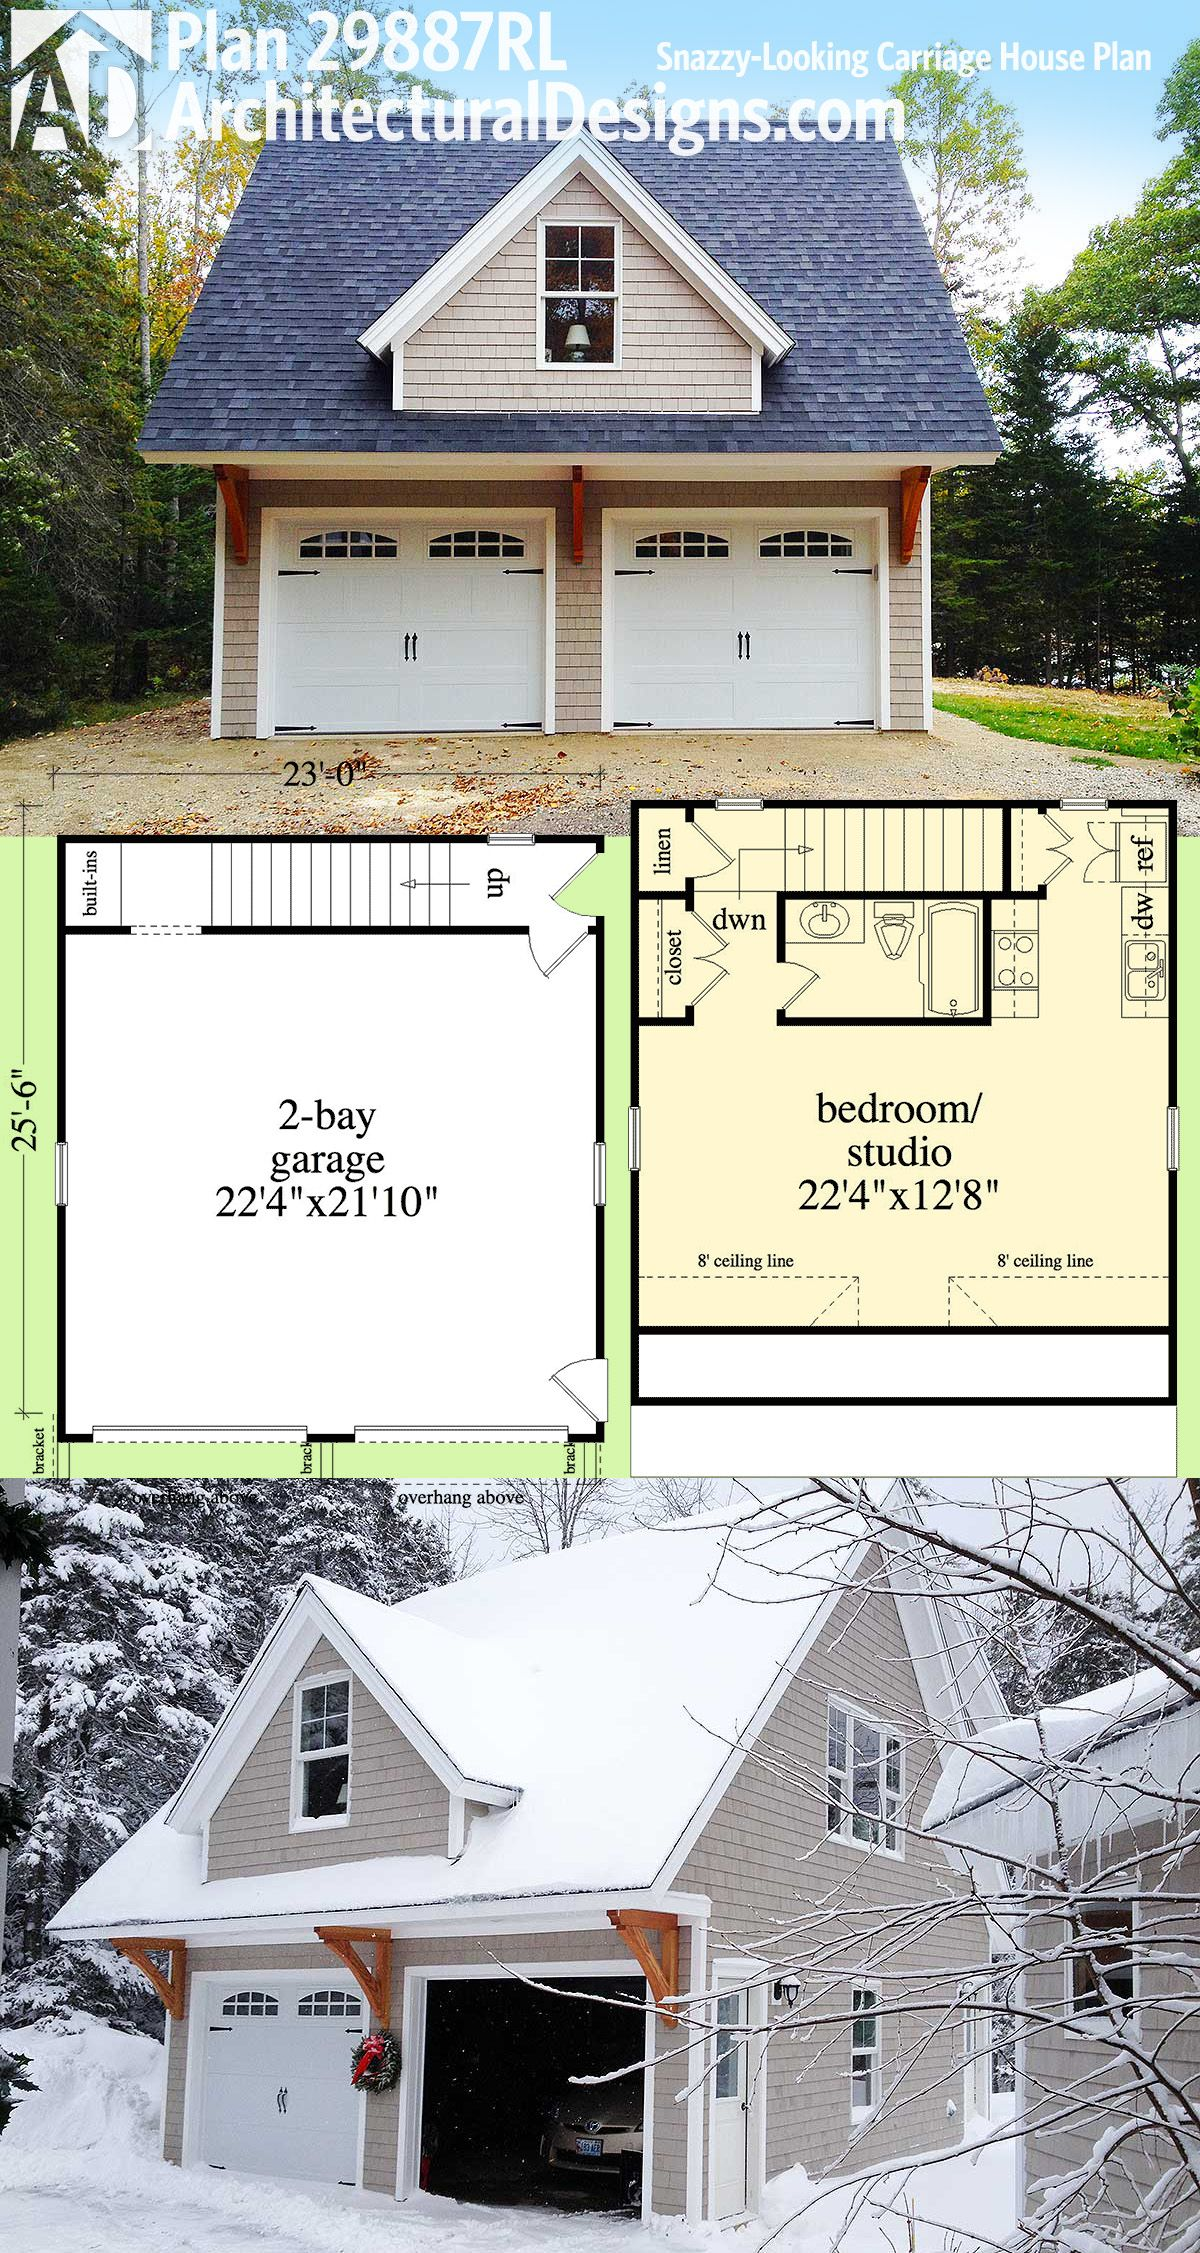 Plan 29887rl: Snazzy-looking Carriage House Plan   Garage   Carriage